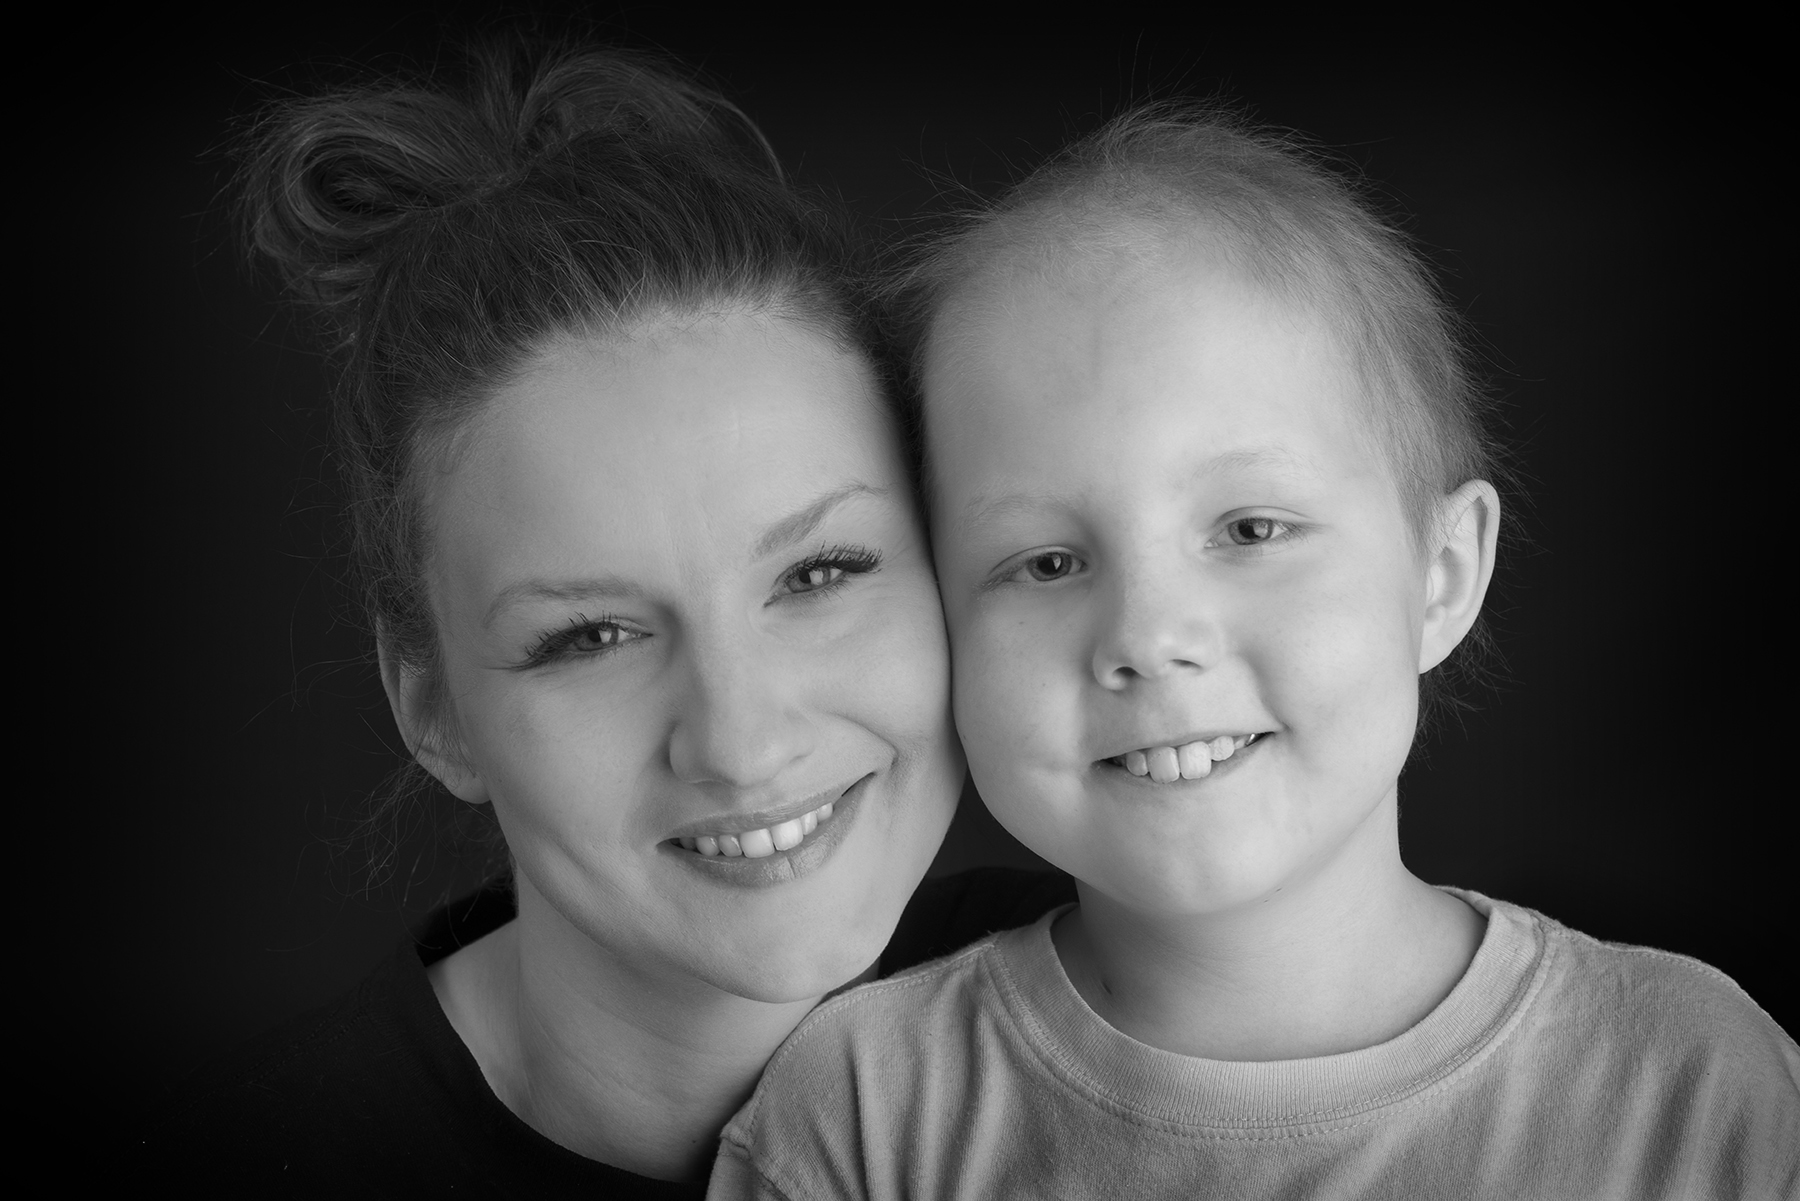 #portrait, #flashesofhope, #mother, #cancer, #love